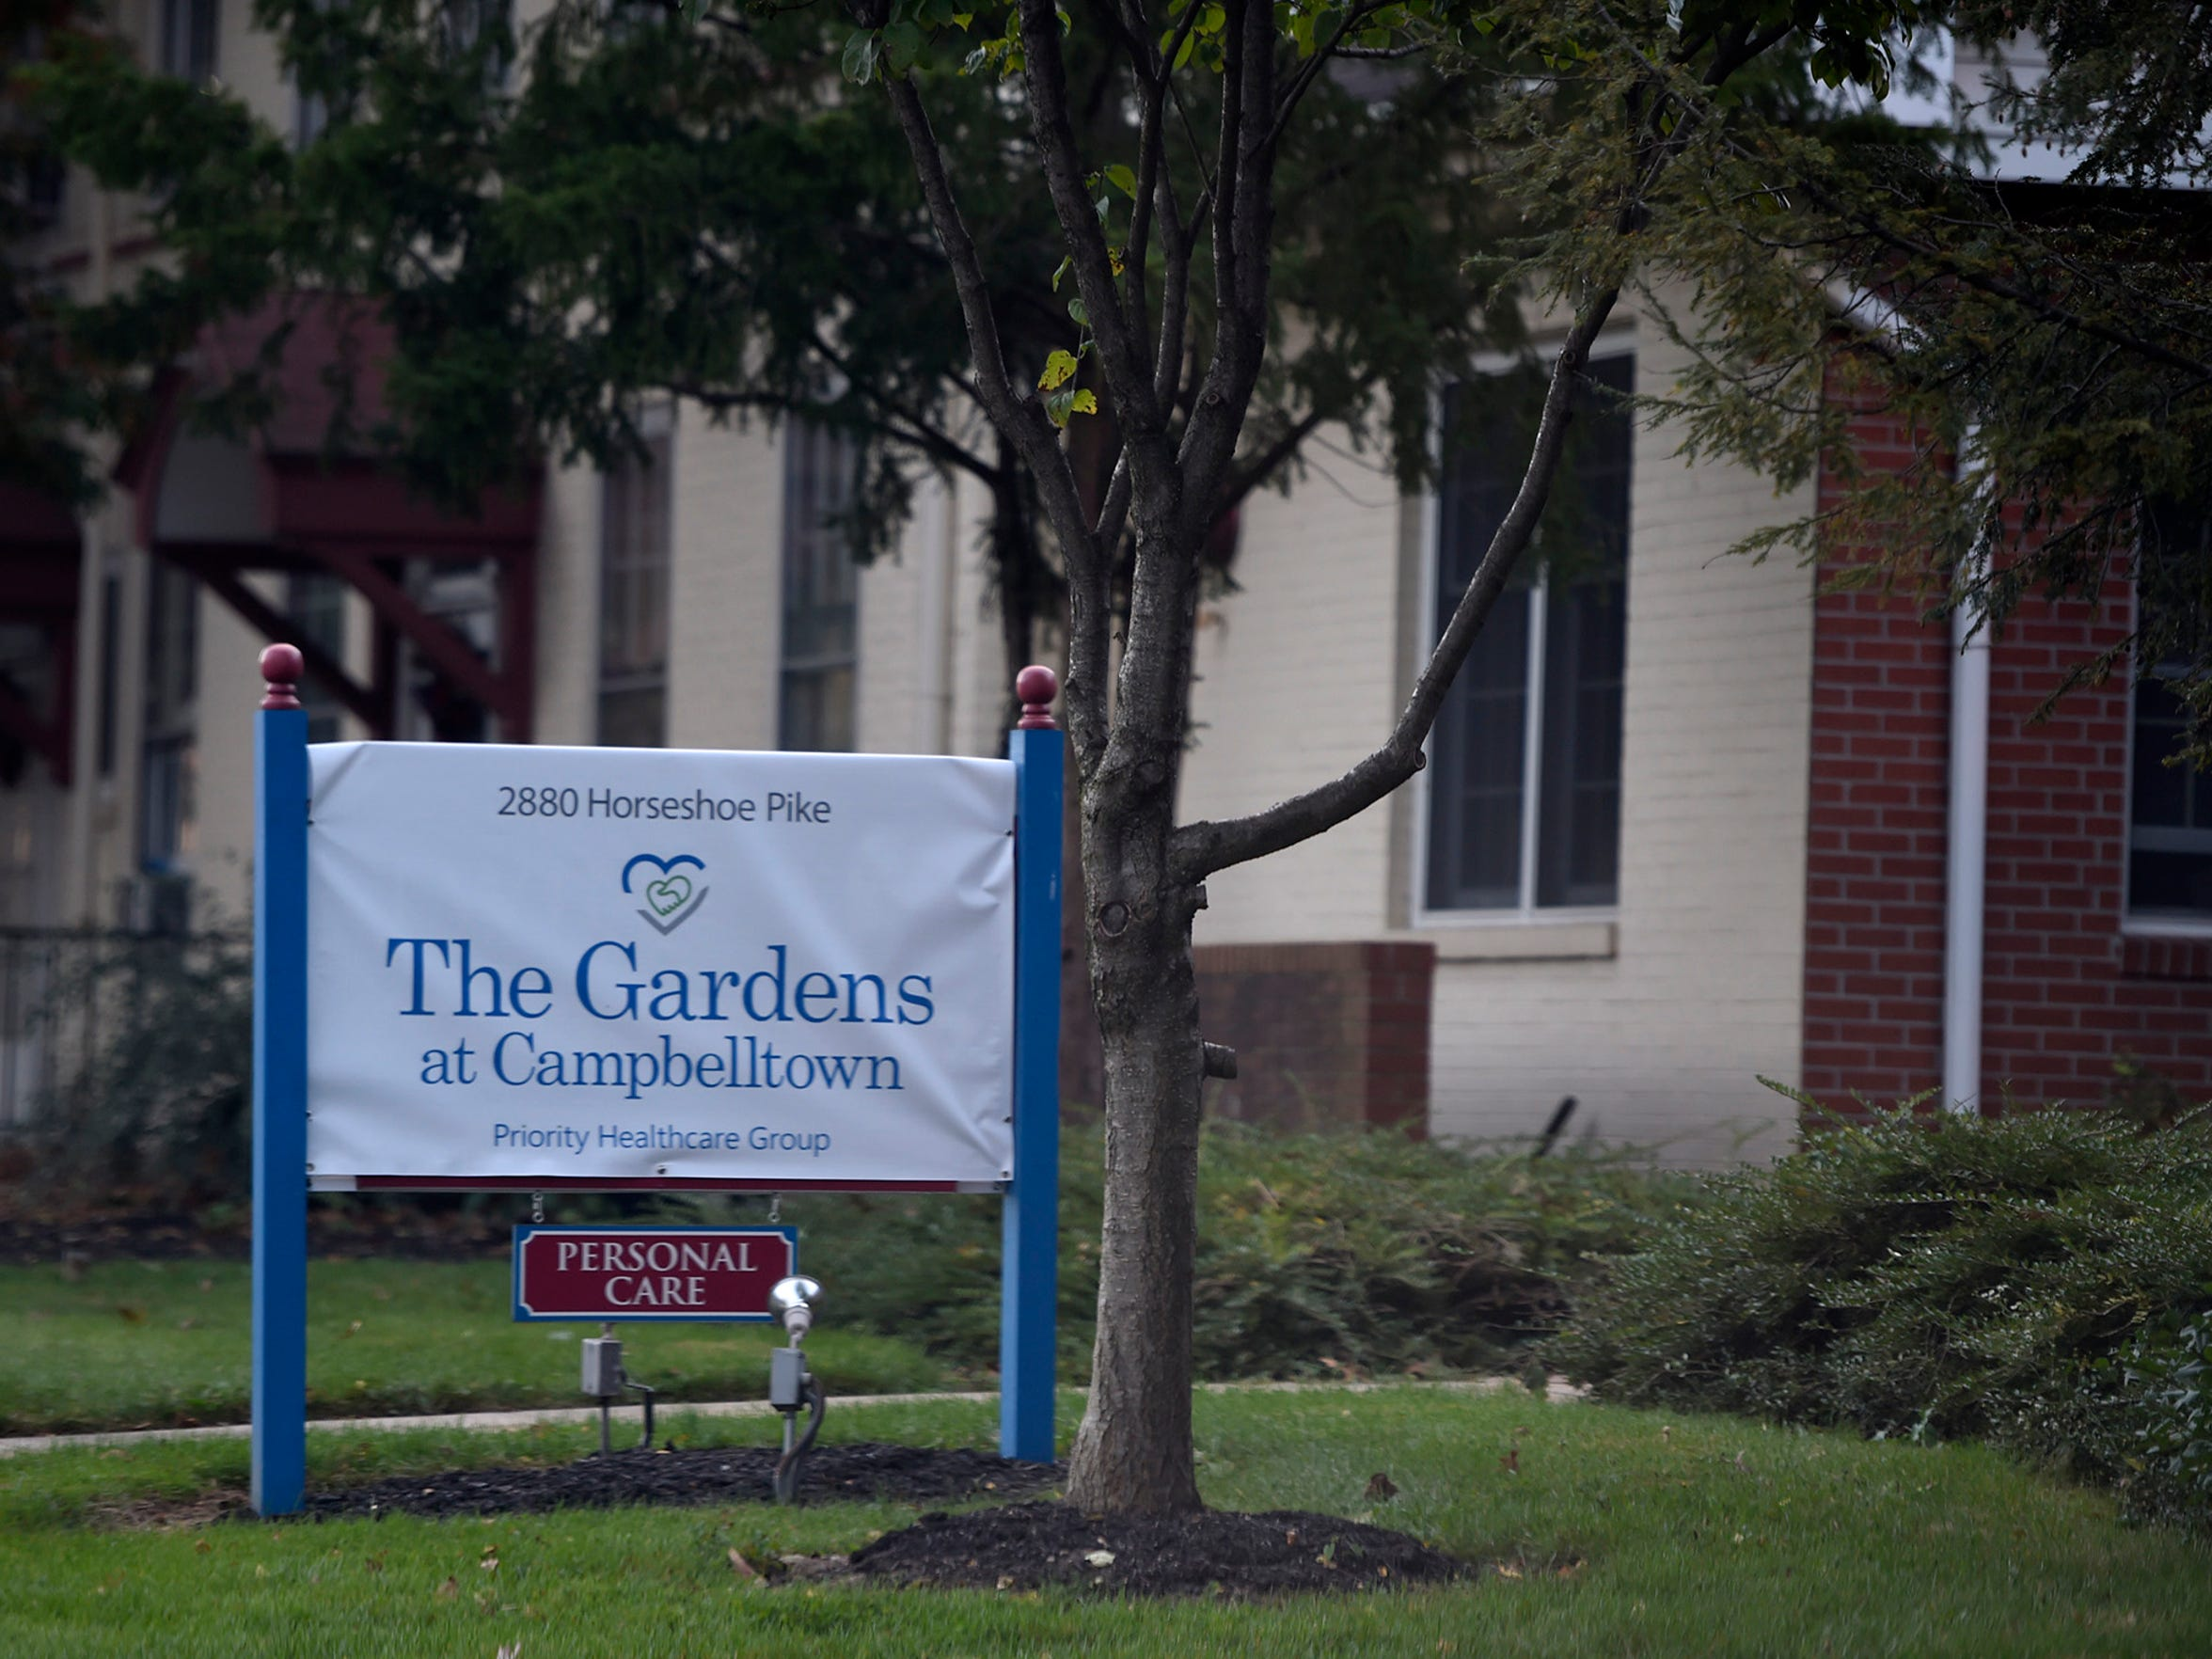 Twin Oaks Nursing Home in Campbelltown has recently rebranded themselves as the Gardens at Campbelltown.